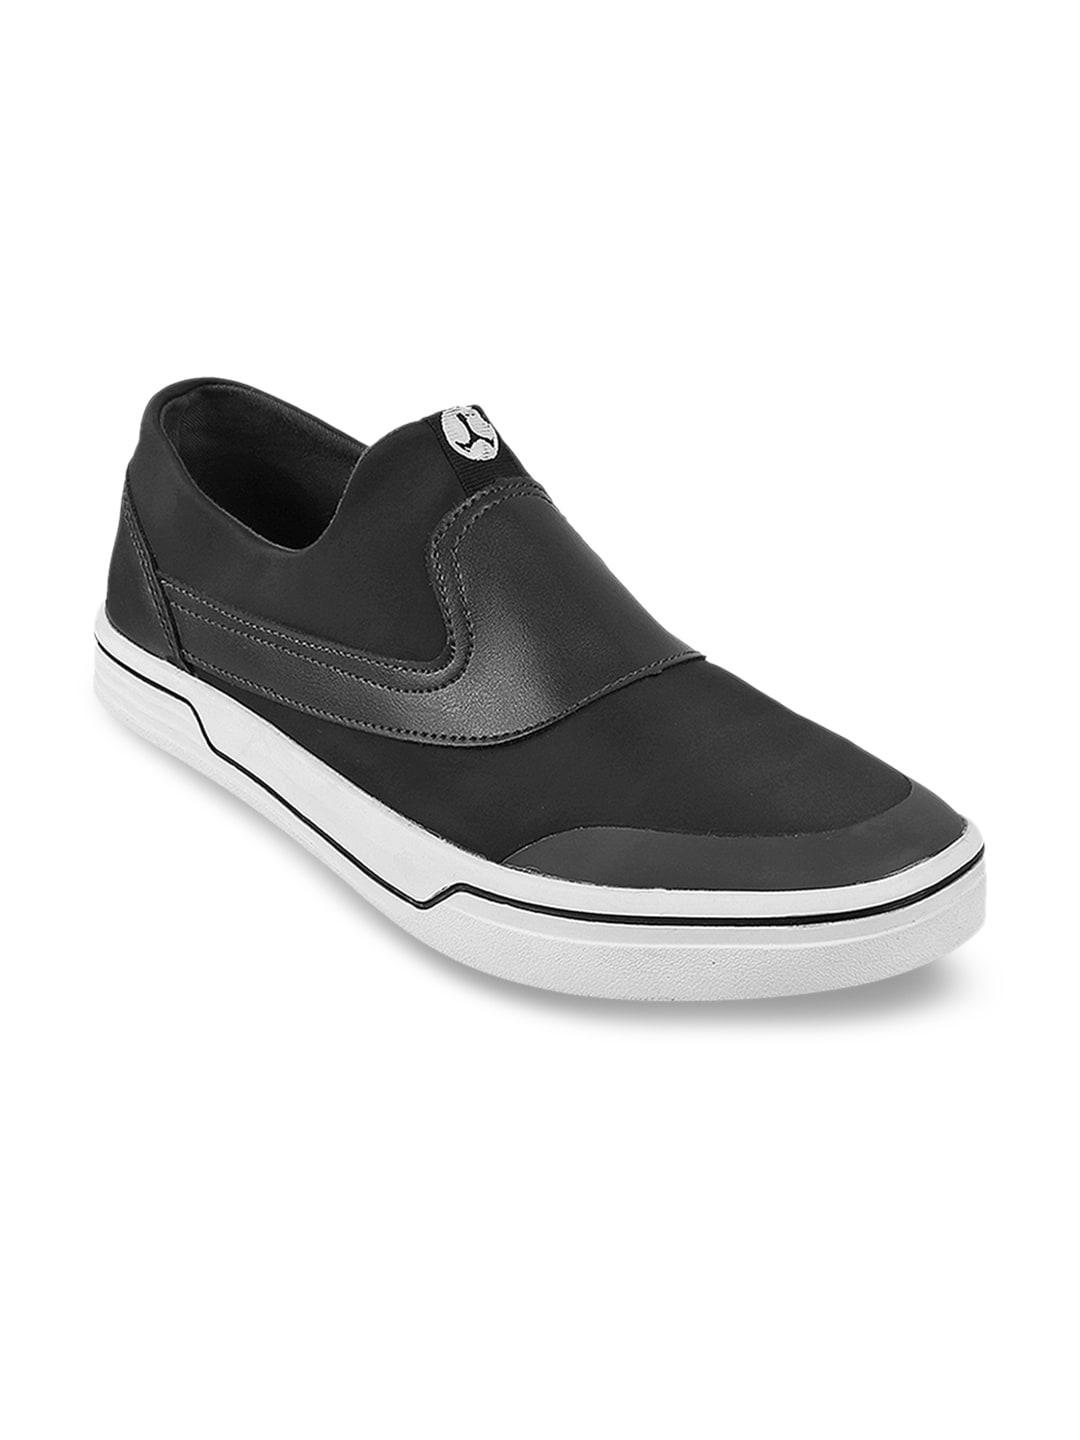 f735c7dc9d2 Shoes - Buy Shoes for Men